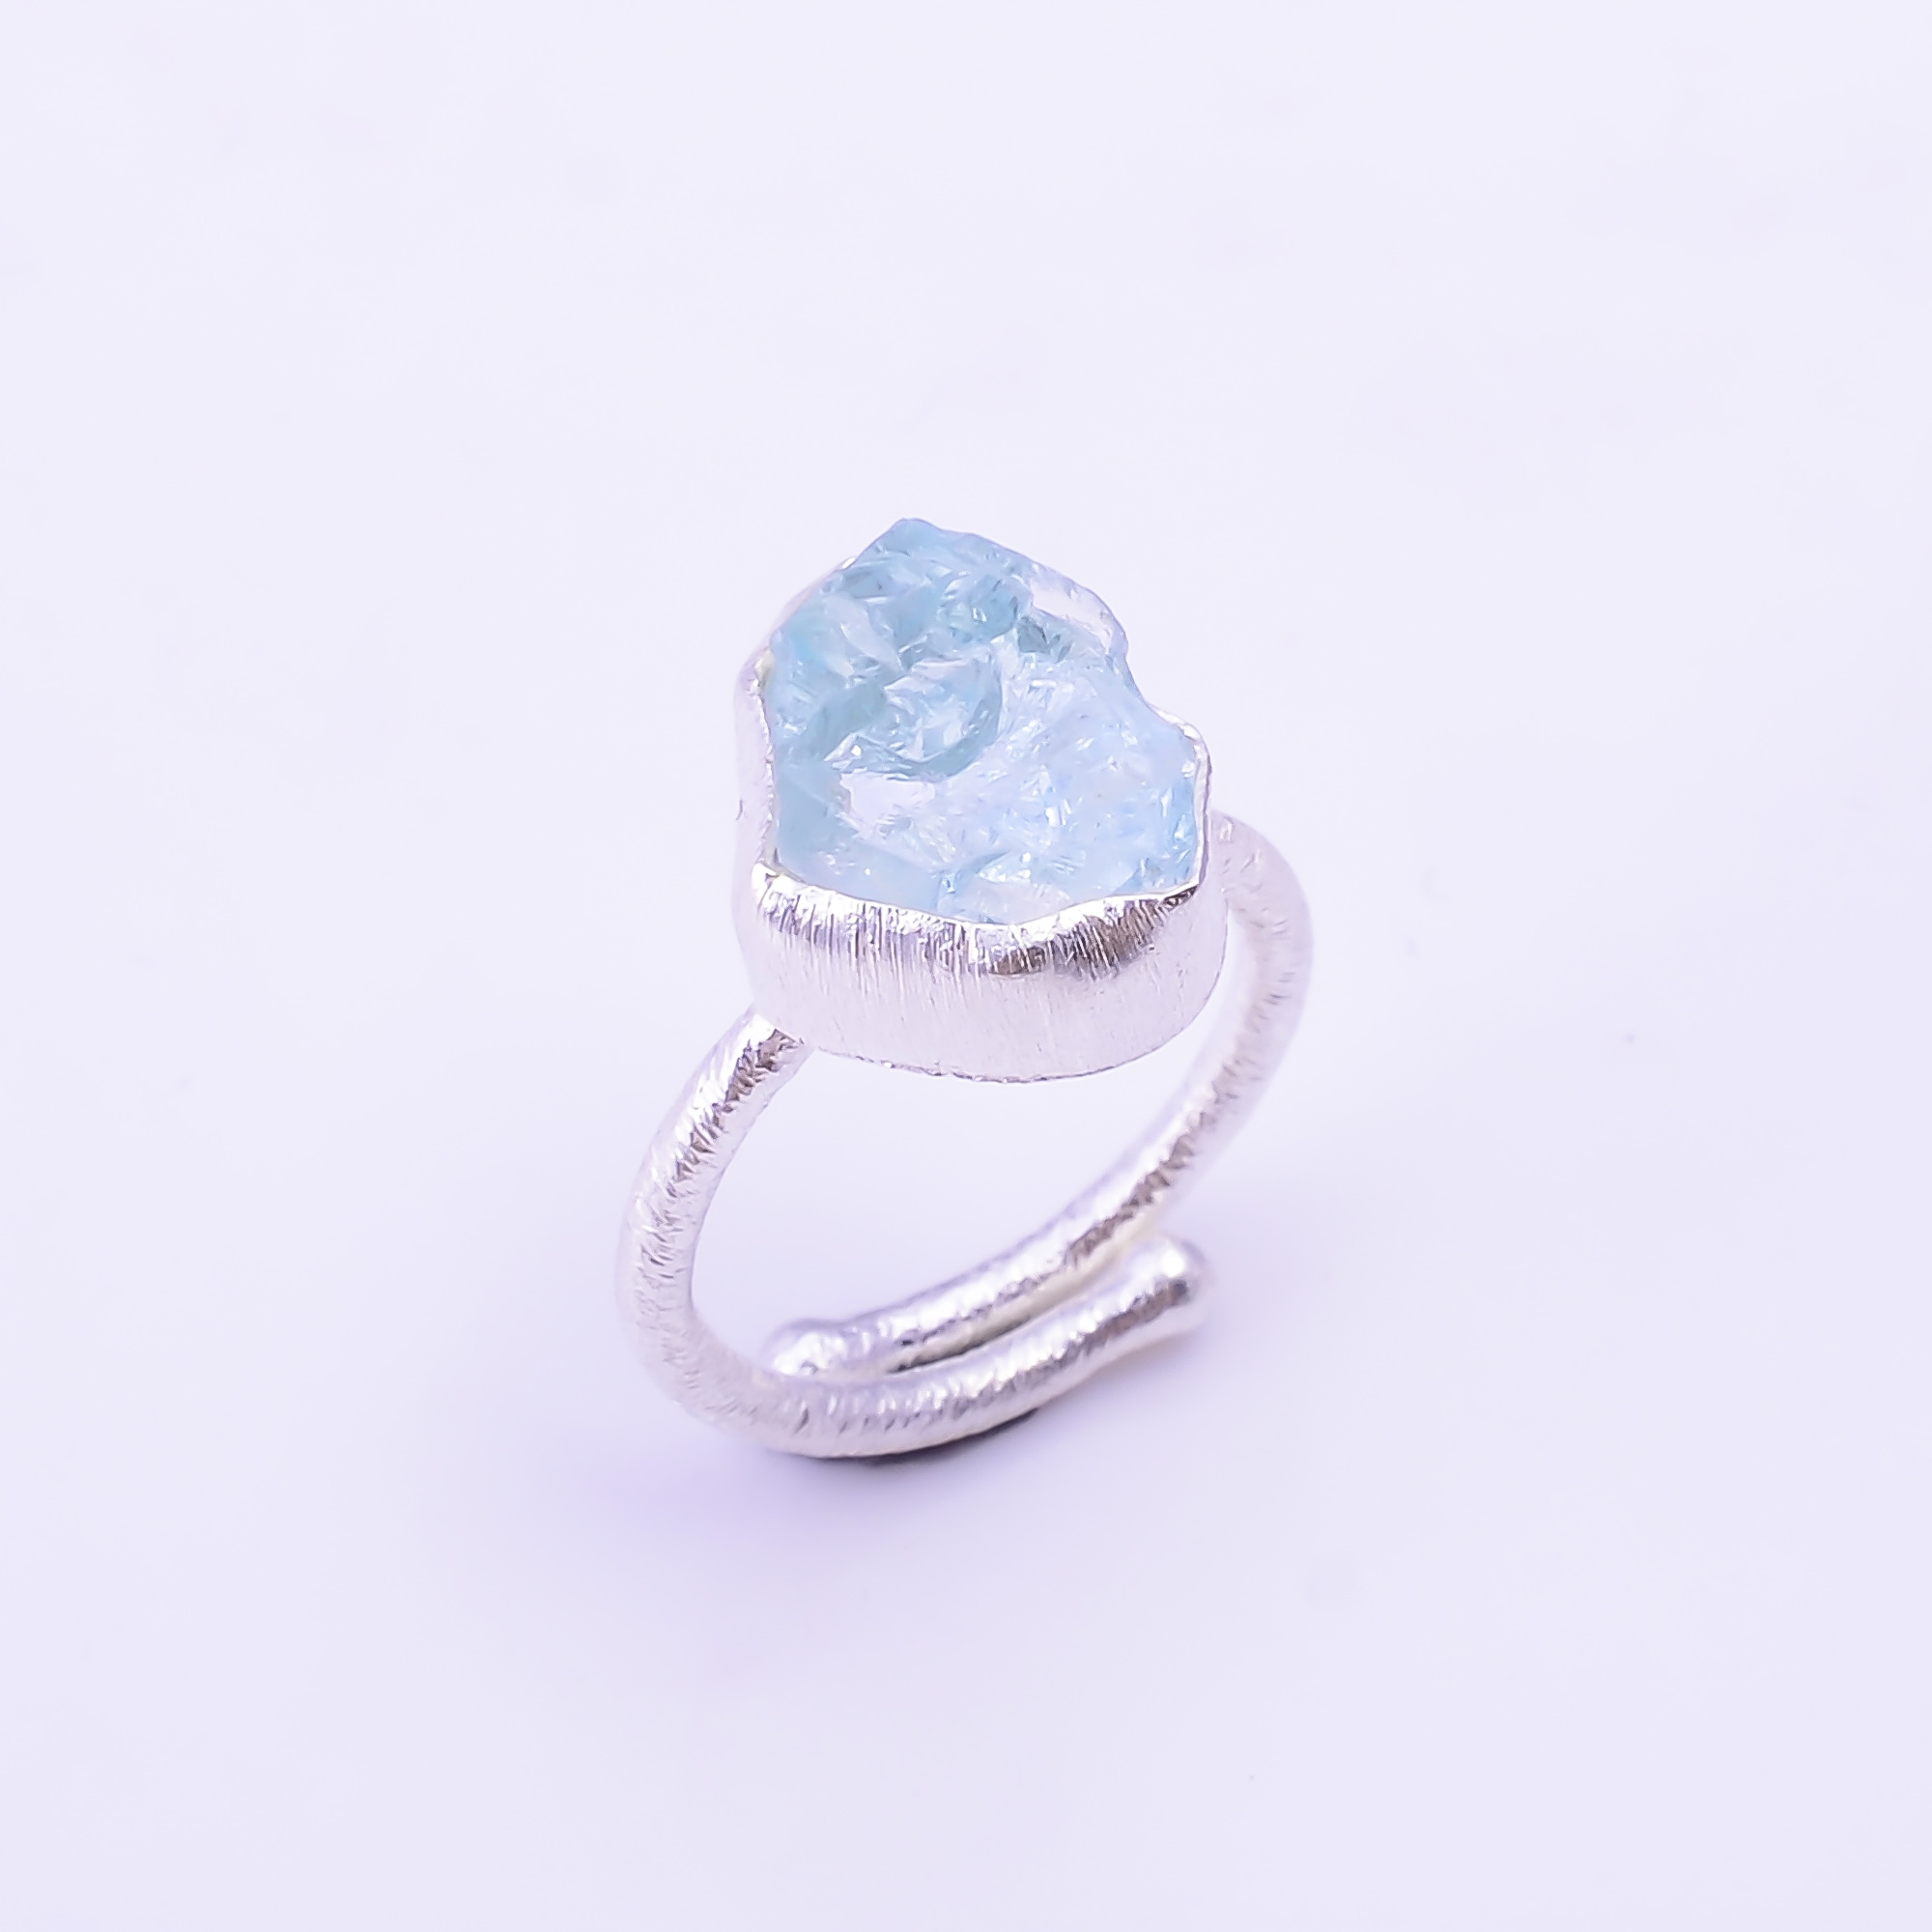 Raw Aquamarine Gemstone 925 Sterling Silver Ring Size US 5.75 Adjustable